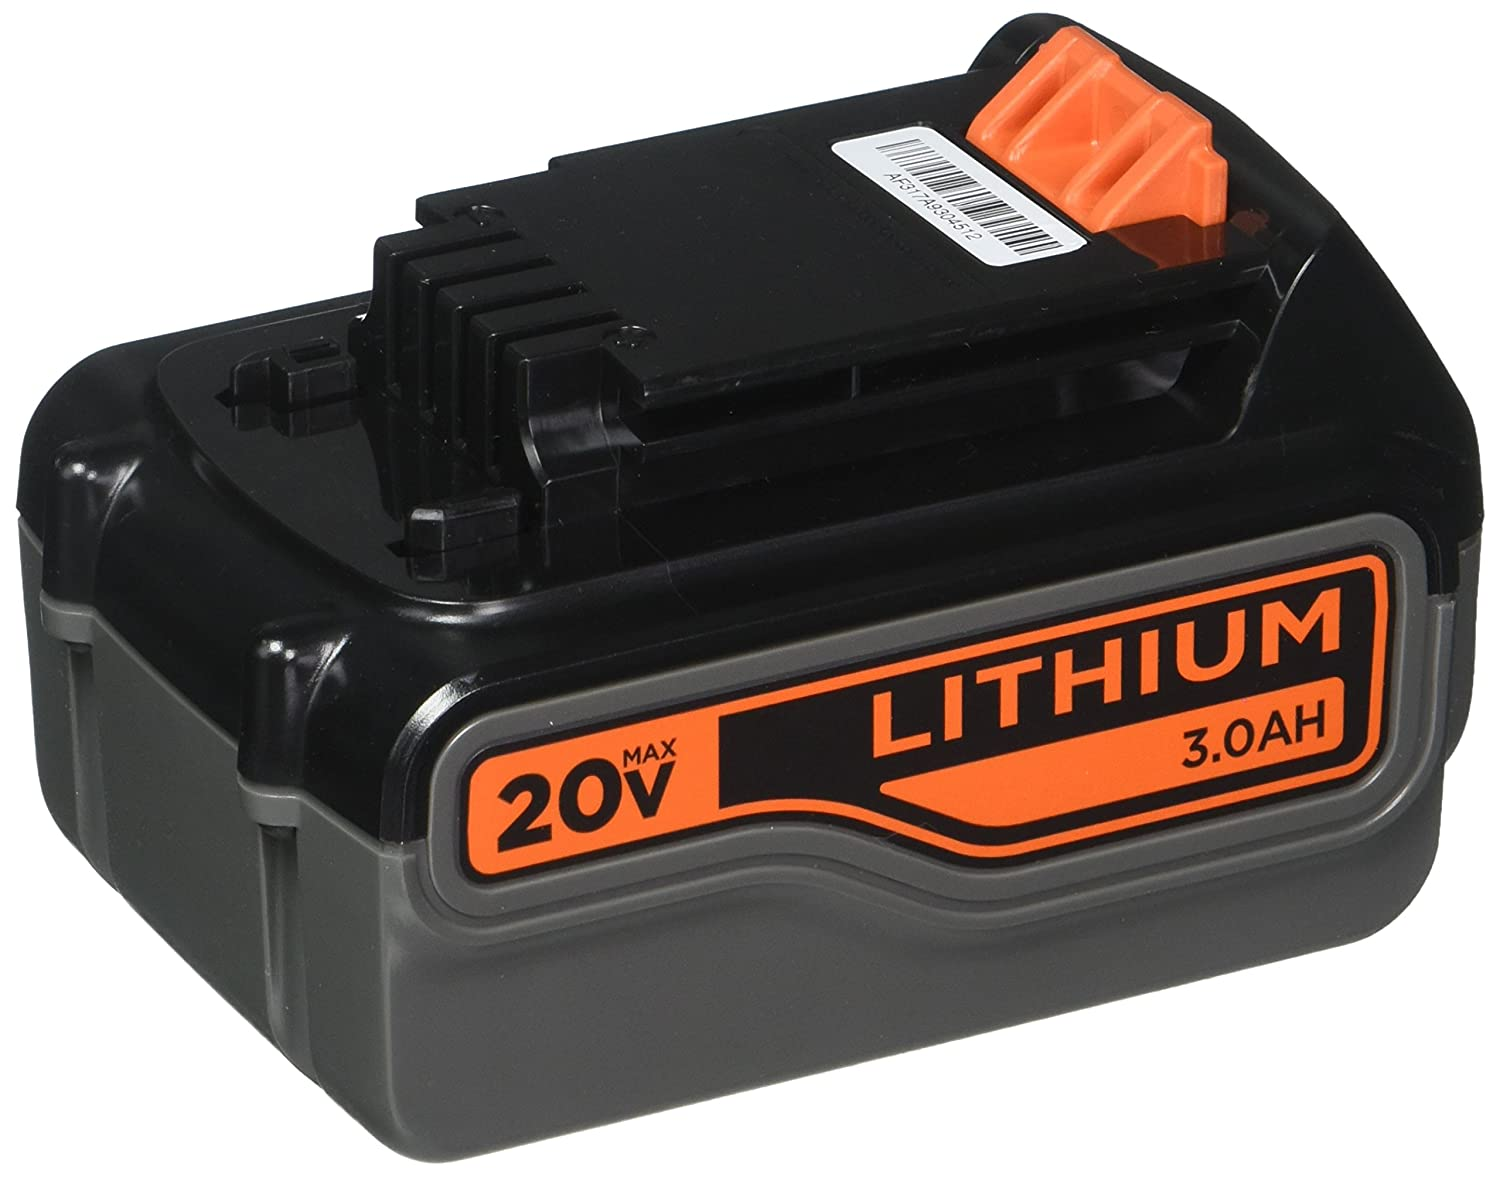 BLACK+DECKER 20V MAX Lithium Battery 3.0 Amp Hour (LB2X3020-OPE)